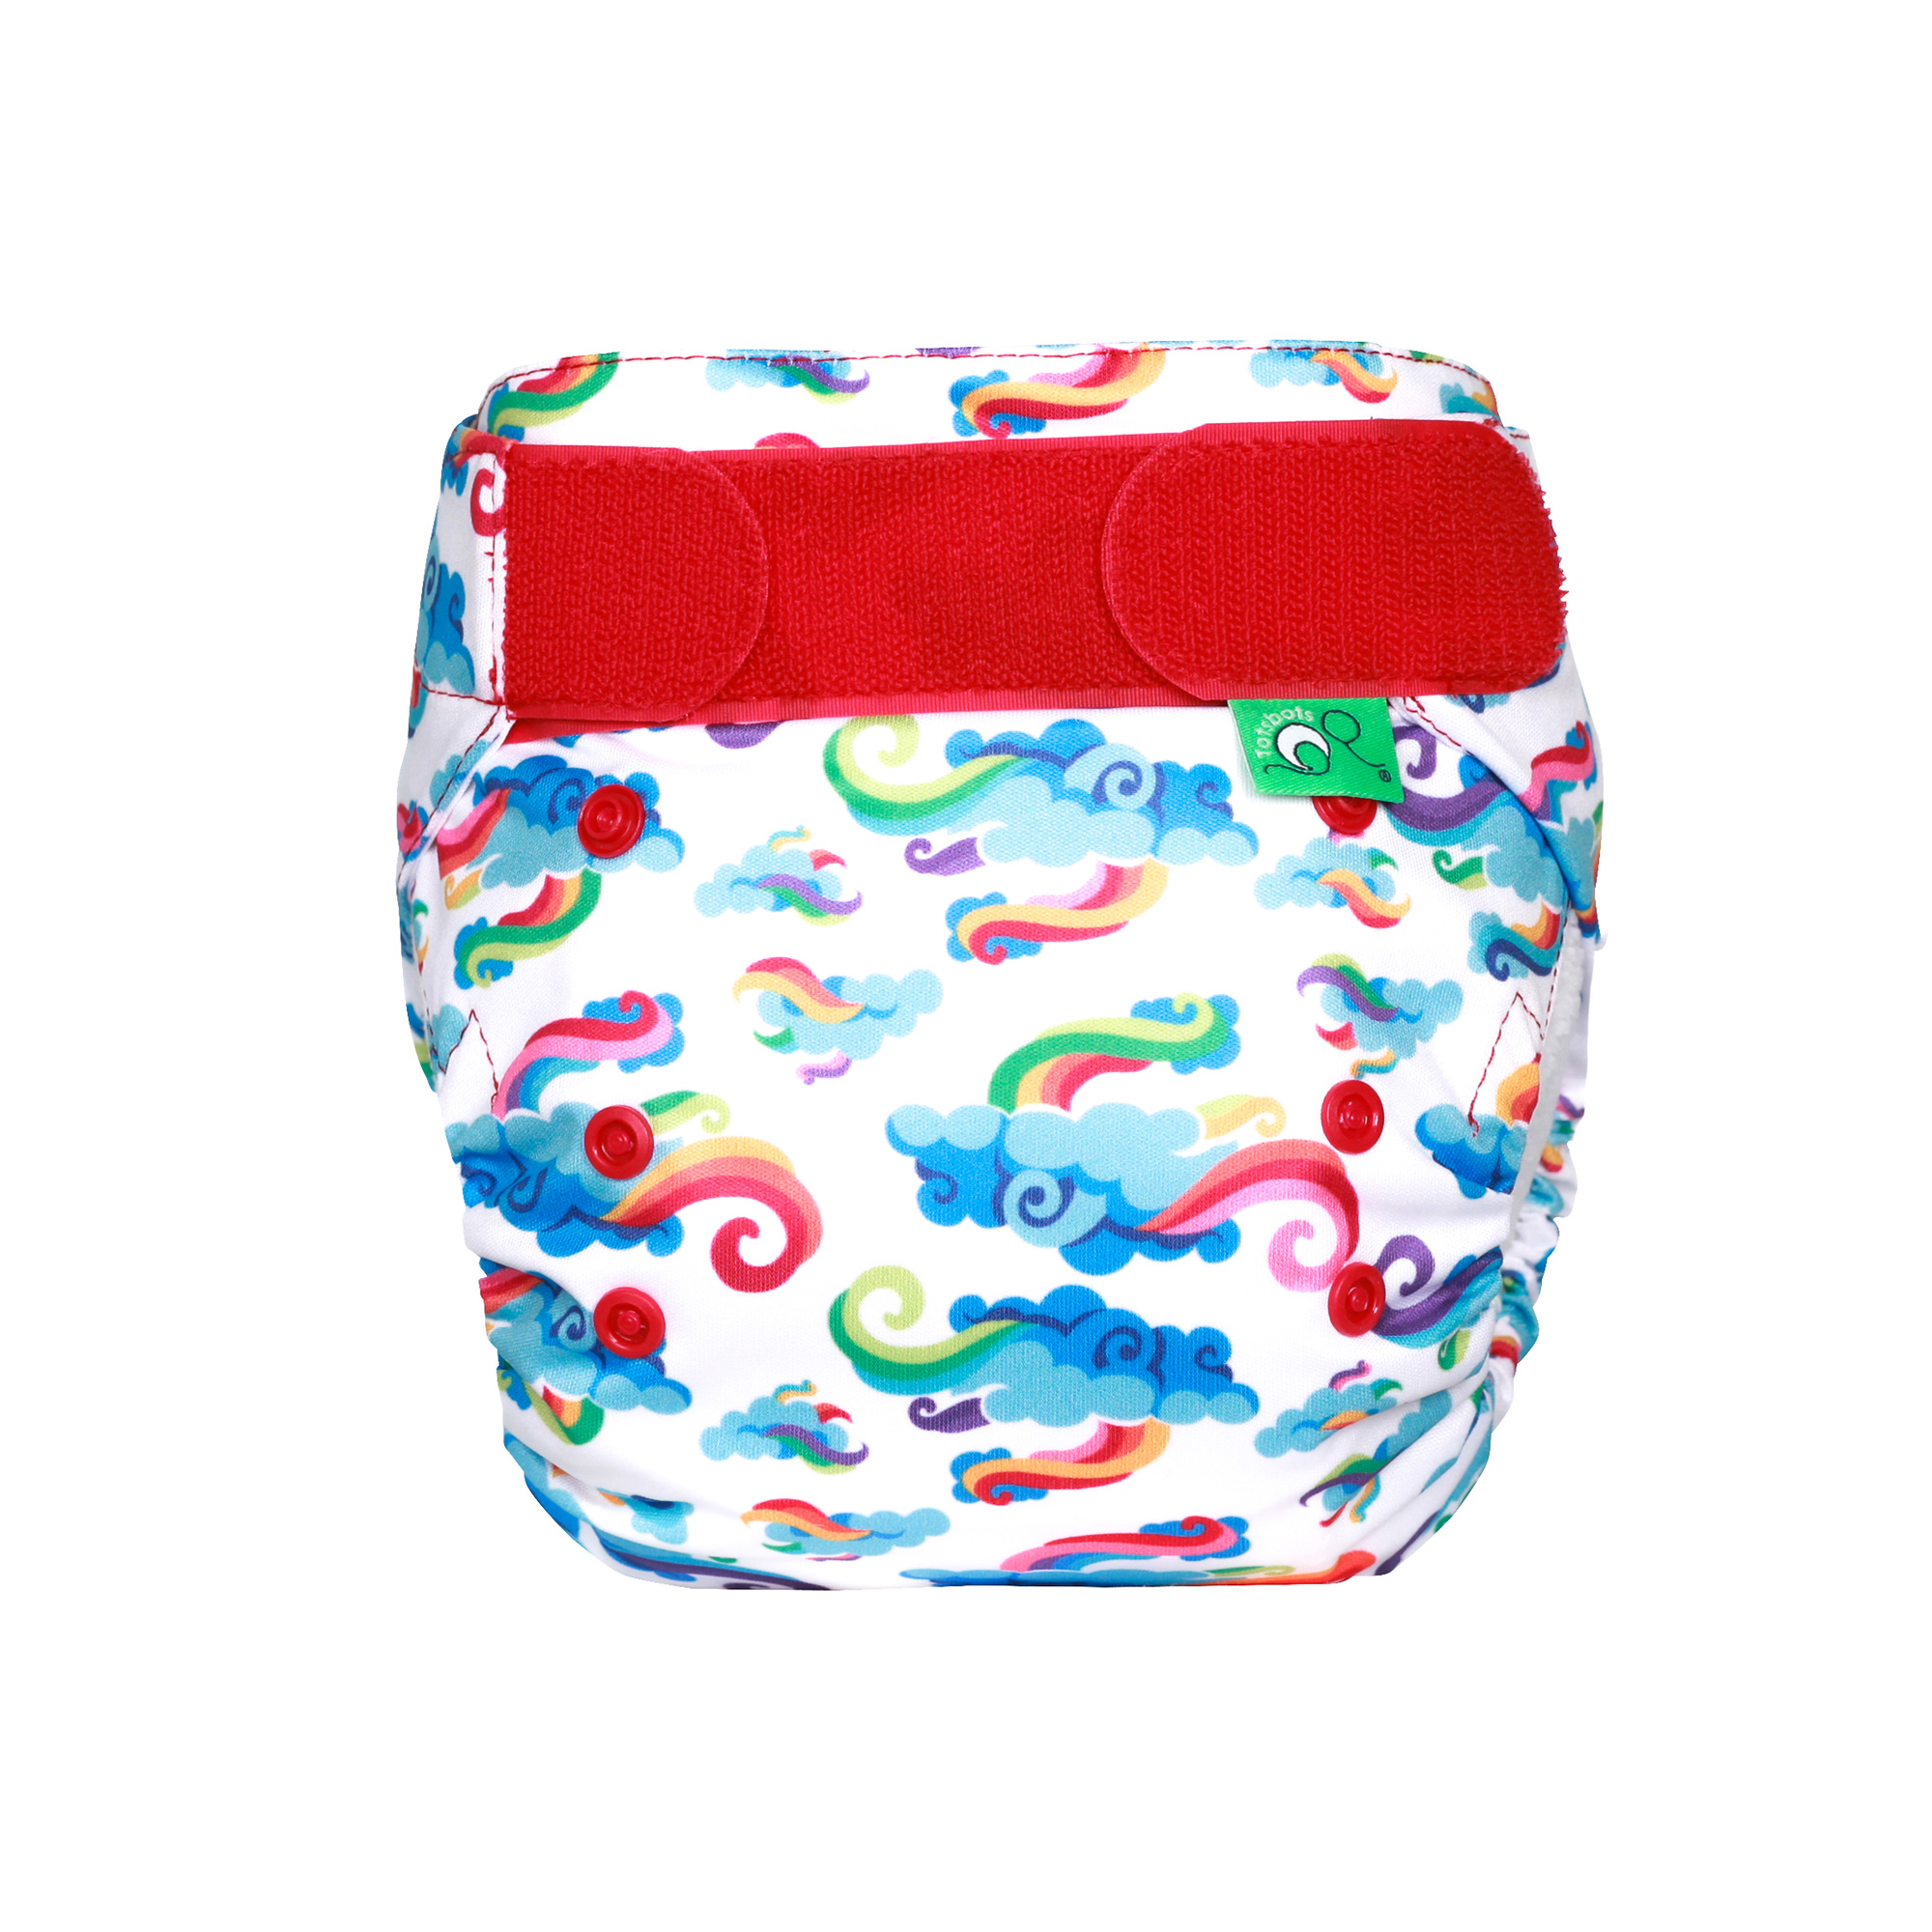 Birth to Potty 8-35lbs TotsBots Easyfit Star All-in-One Reusable Nappy Nutty